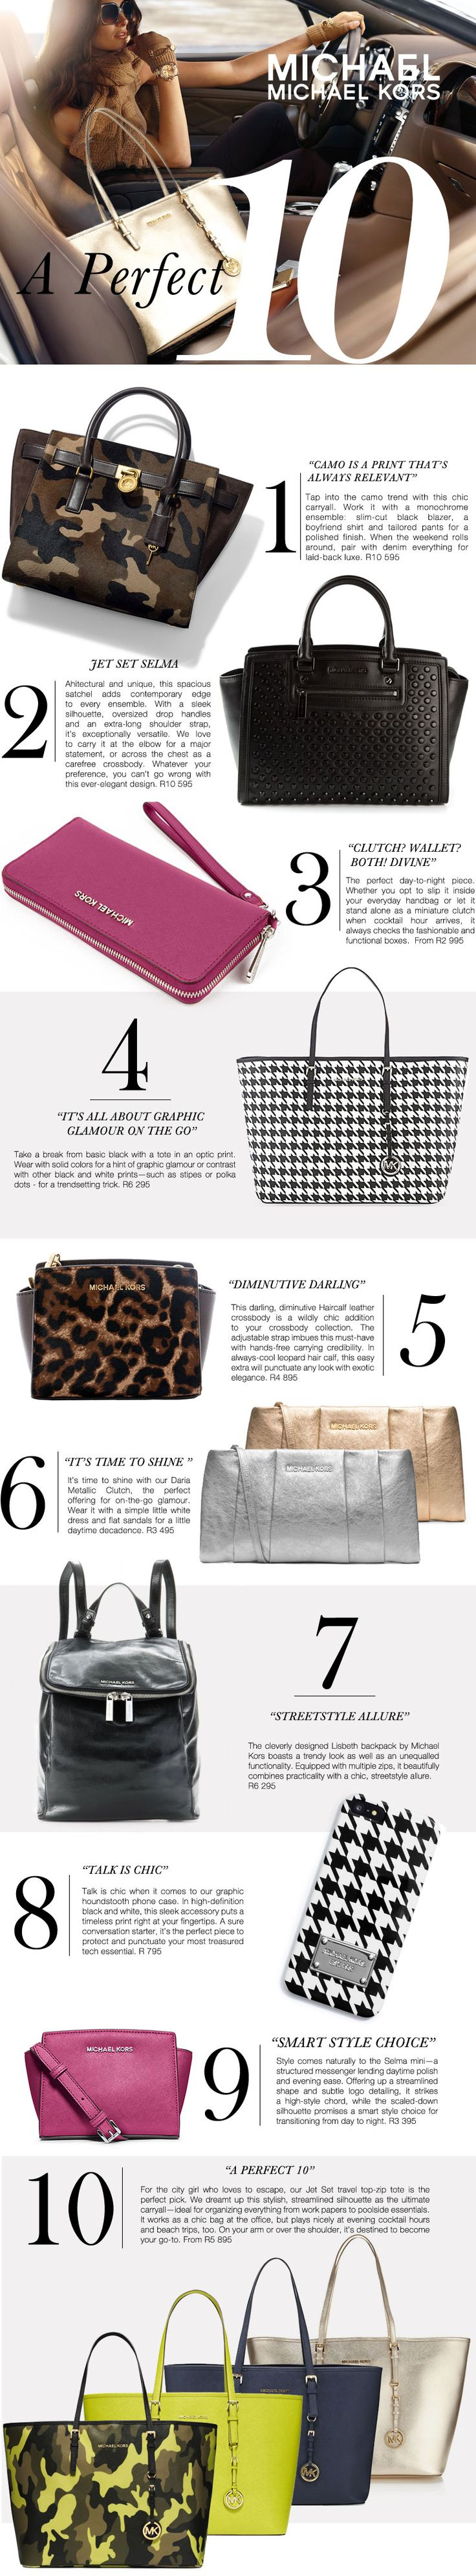 Michael Kors newsletter for Callaghan Collezioni